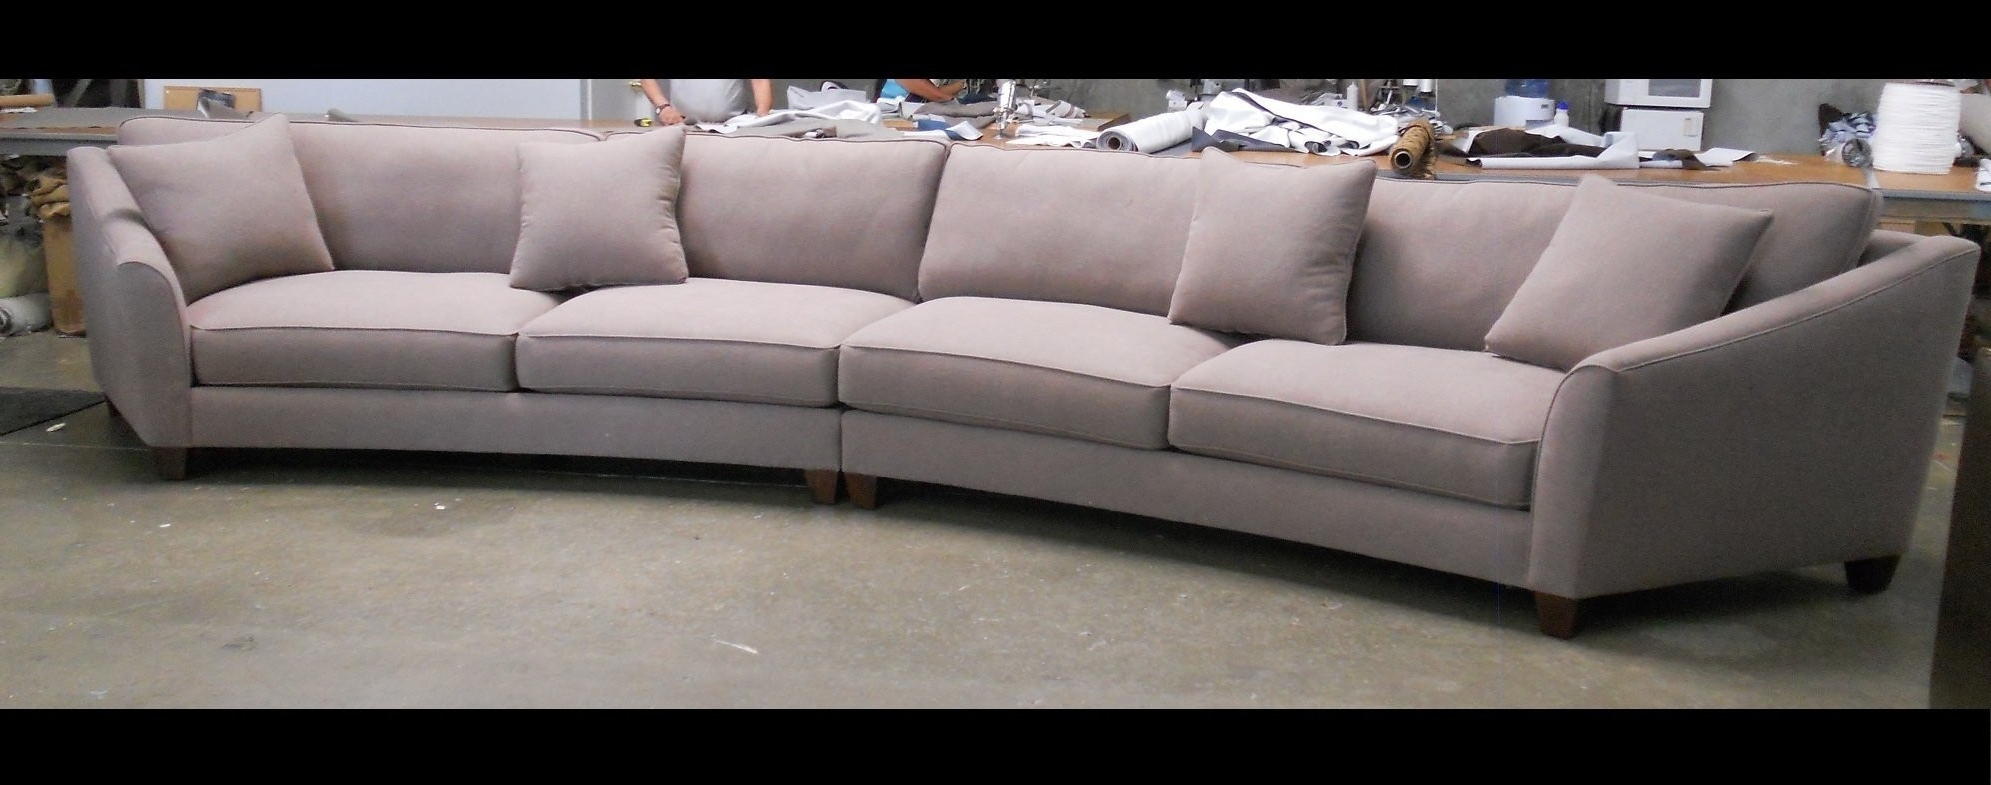 Bargain Rounded Sectional Sofa Curved Design Cabinets Beds Sofas Regarding Trendy Rounded Sofas (View 1 of 20)